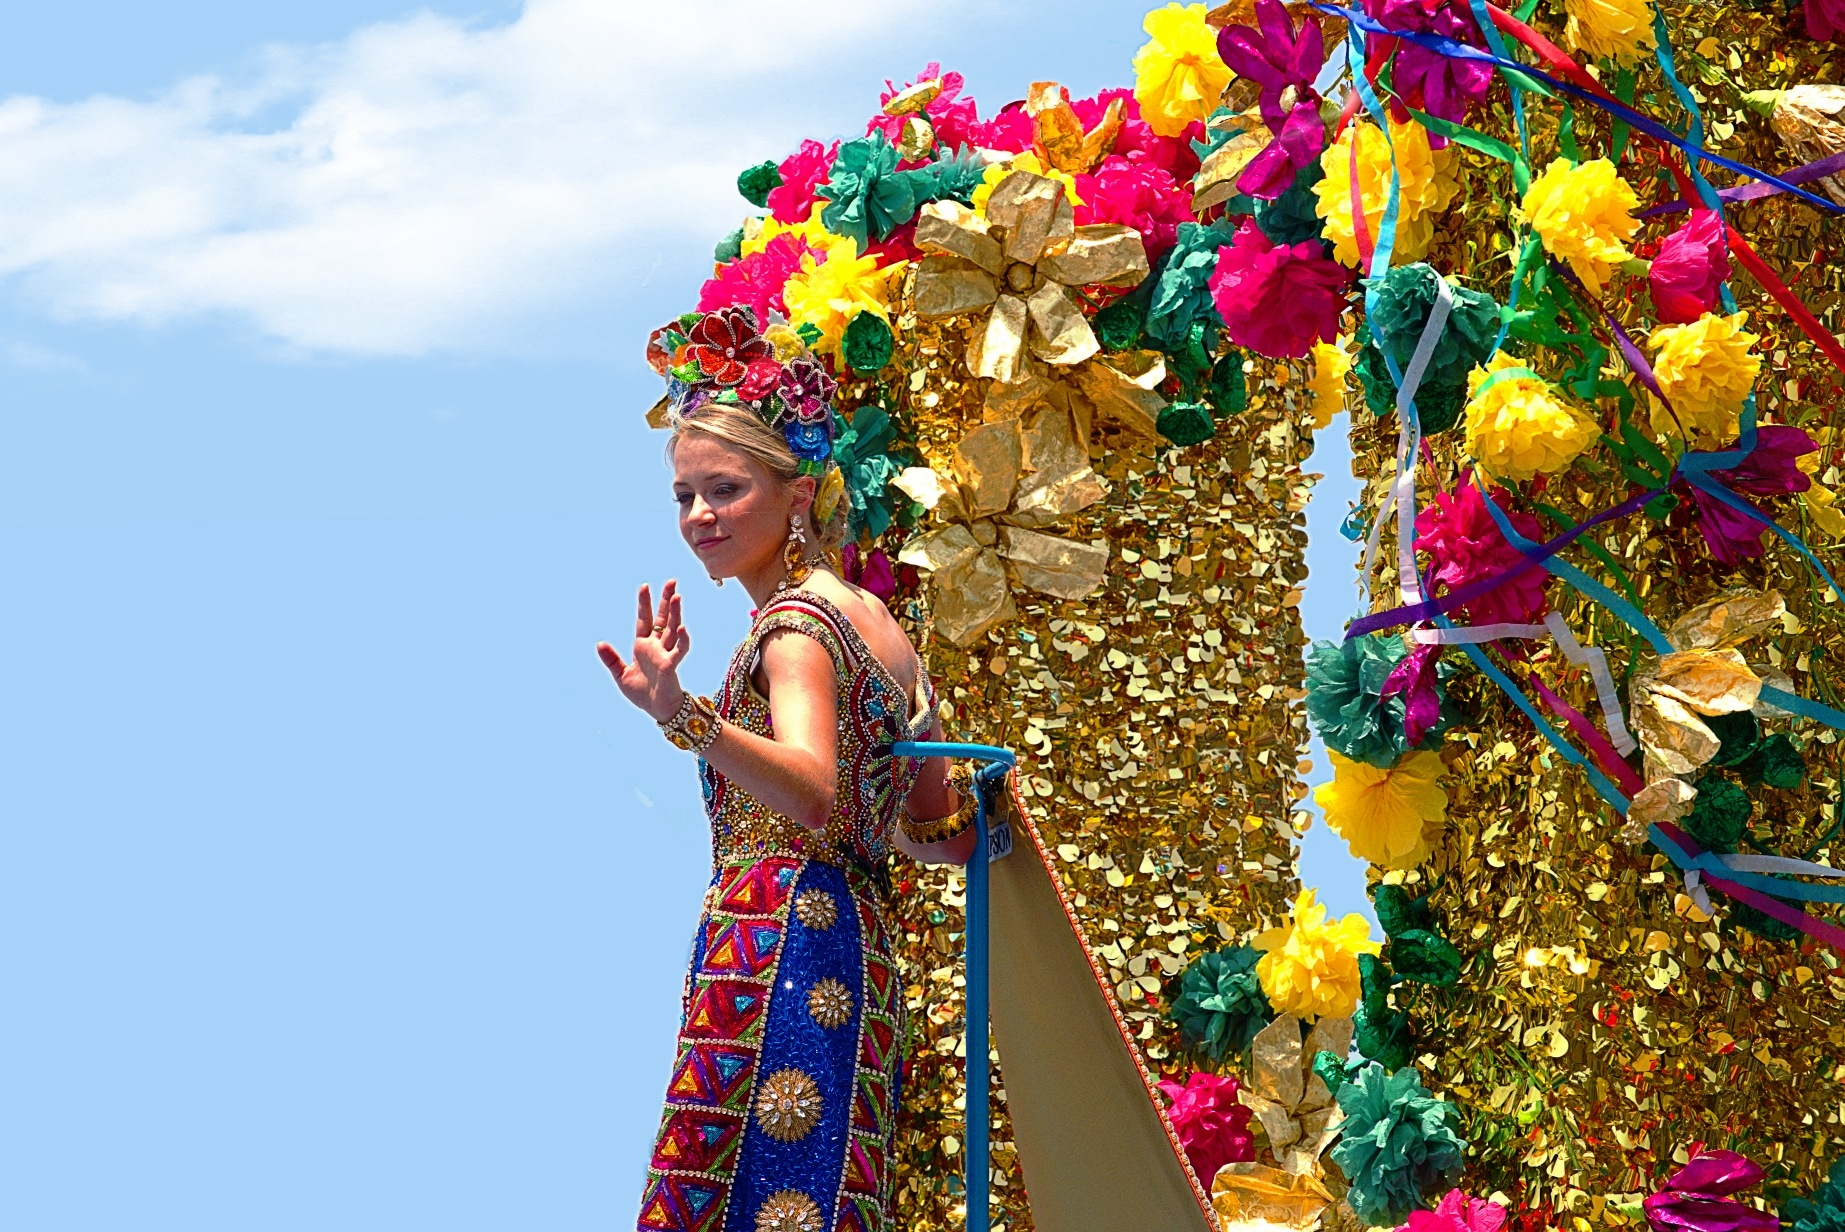 The Flower Parade by Kenny Simpson